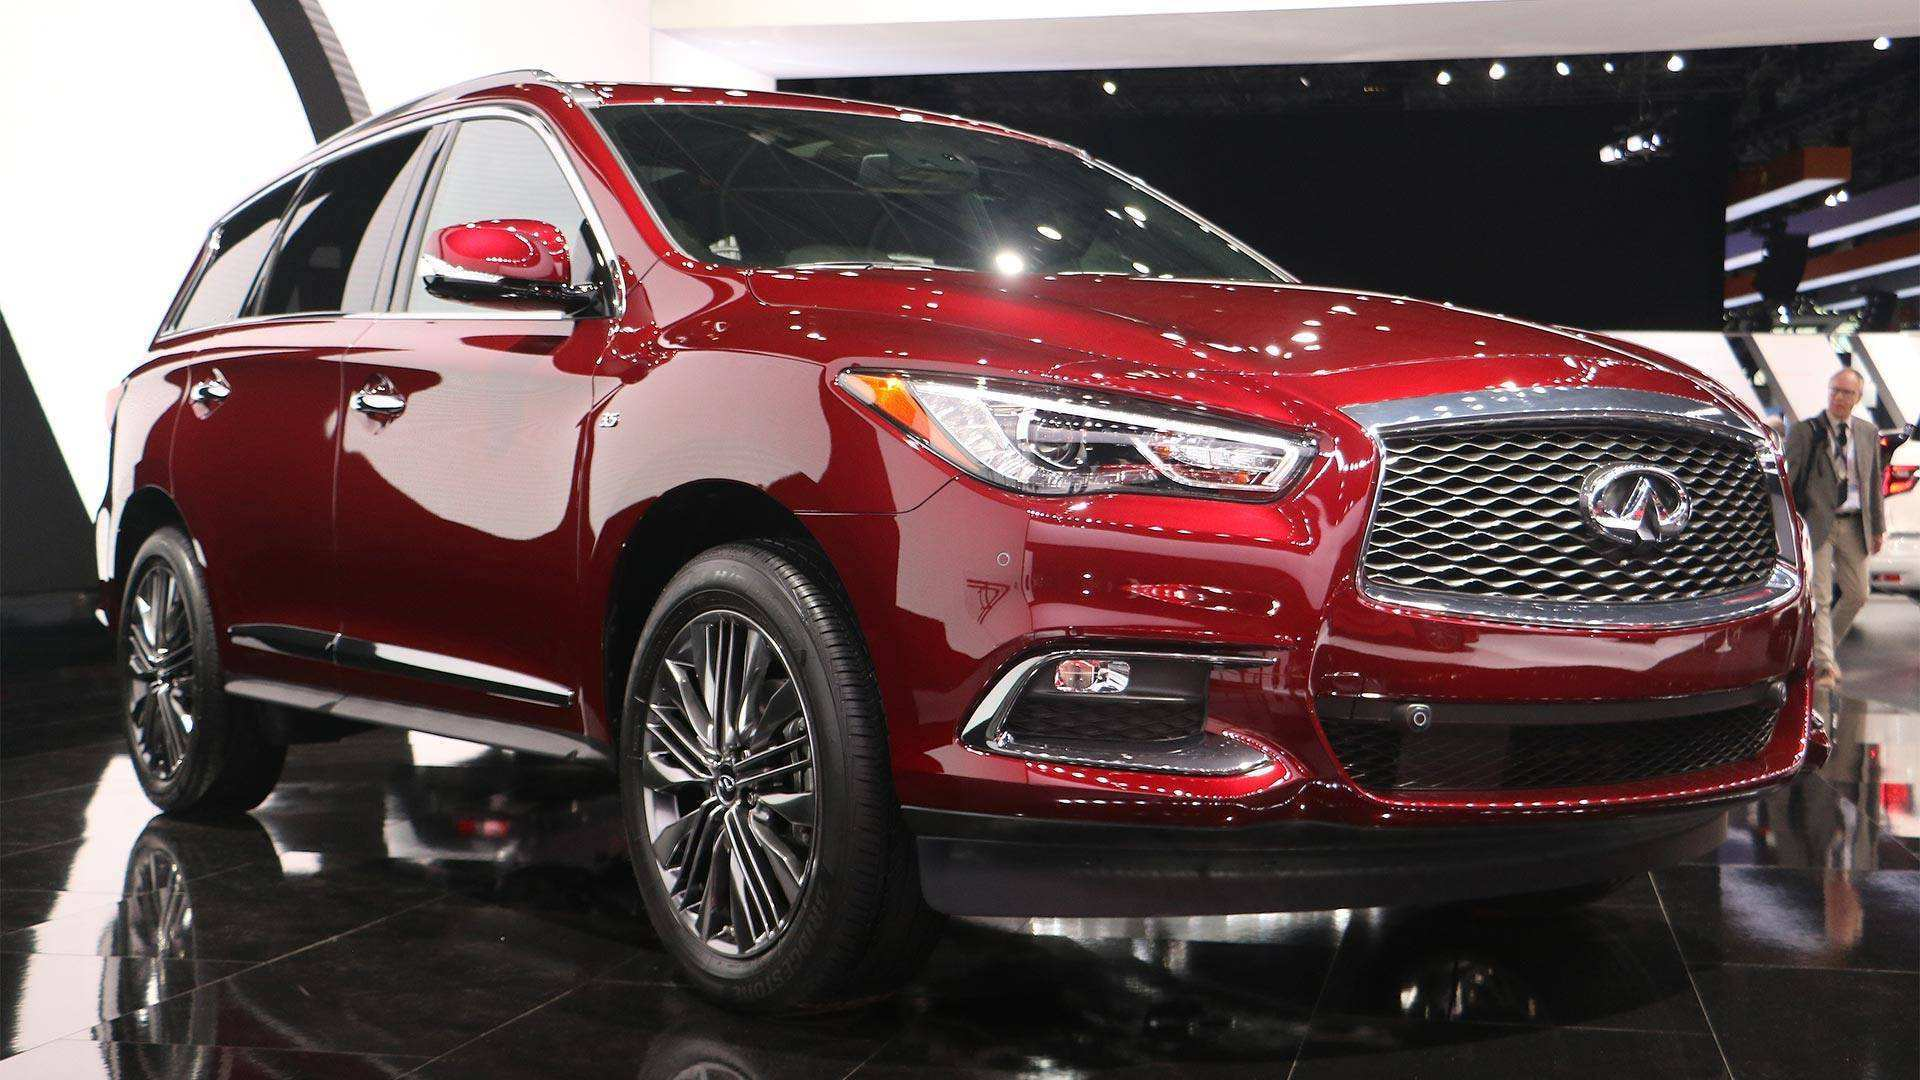 17 Great The 2019 Infiniti Qx60 Trim Levels Release Review for The 2019 Infiniti Qx60 Trim Levels Release